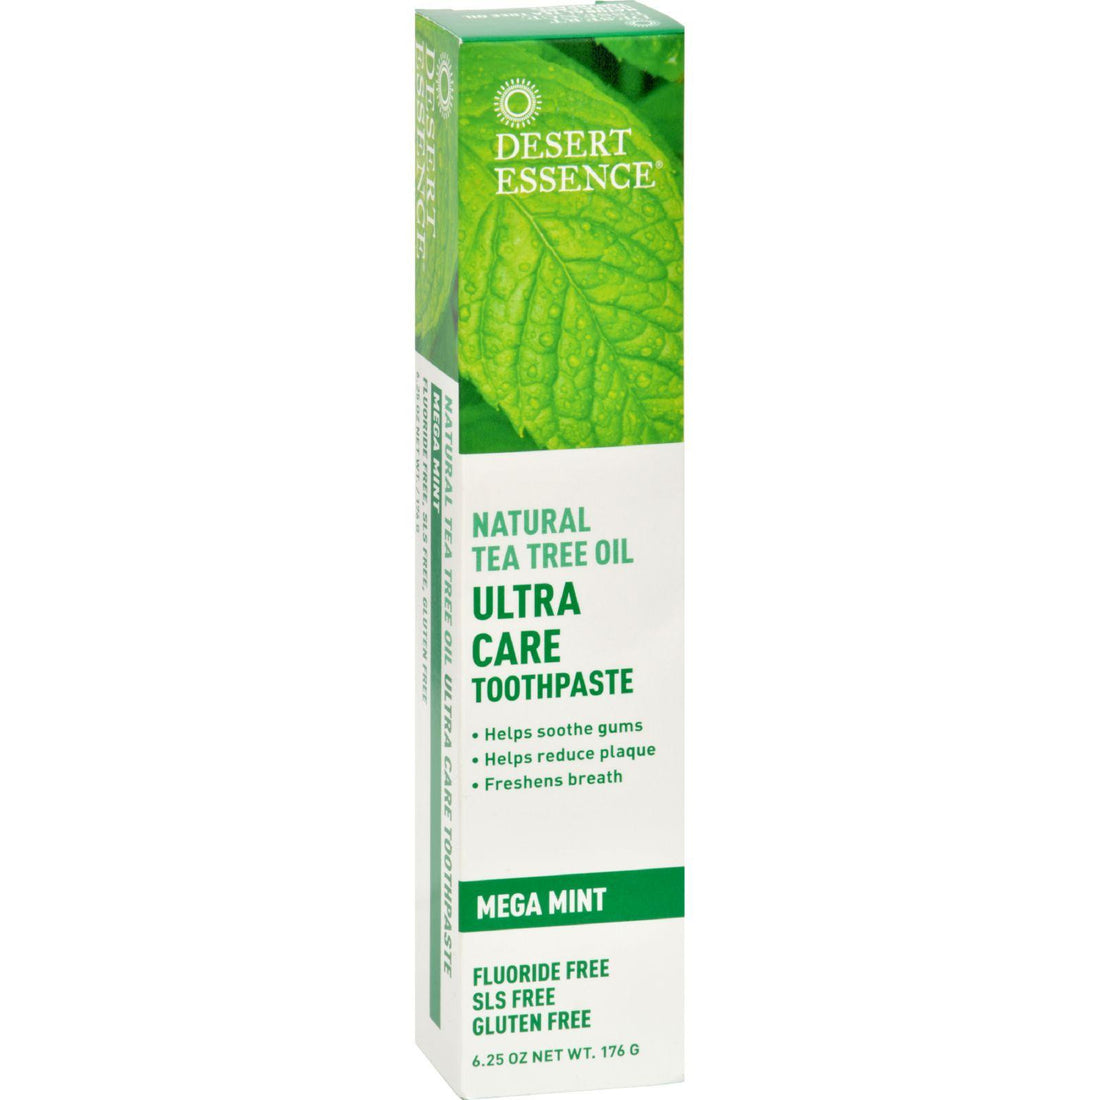 Mother Mantis: Desert Essence Toothpaste - Tea Tree U-care Mint - 6.25 Oz Desert Essence